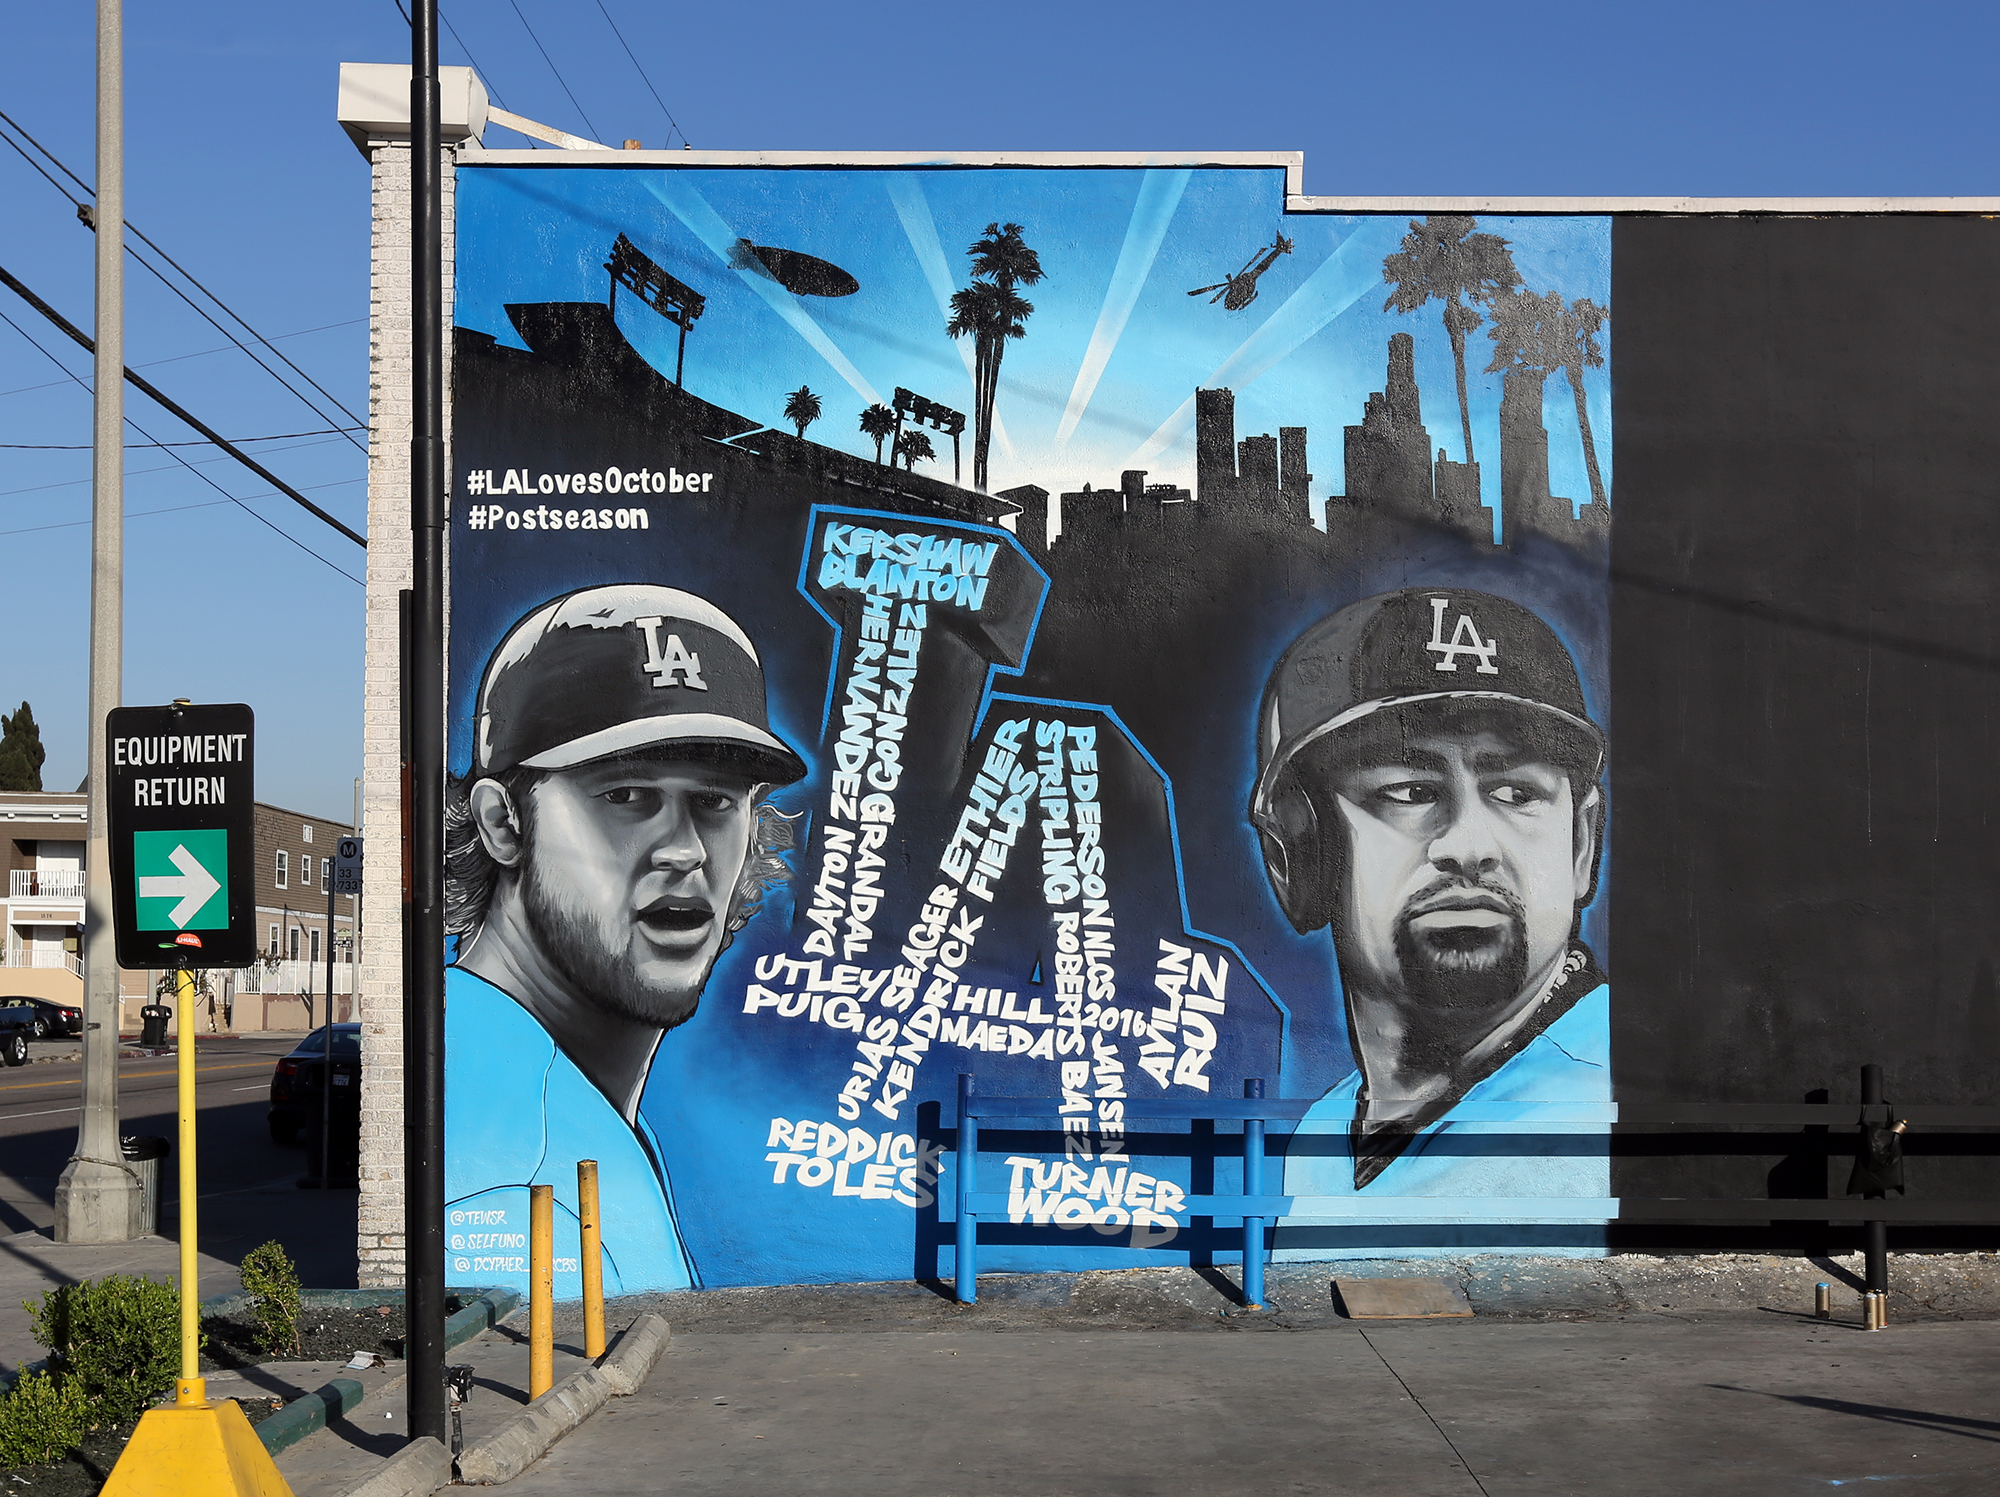 La graffiti artist for hire